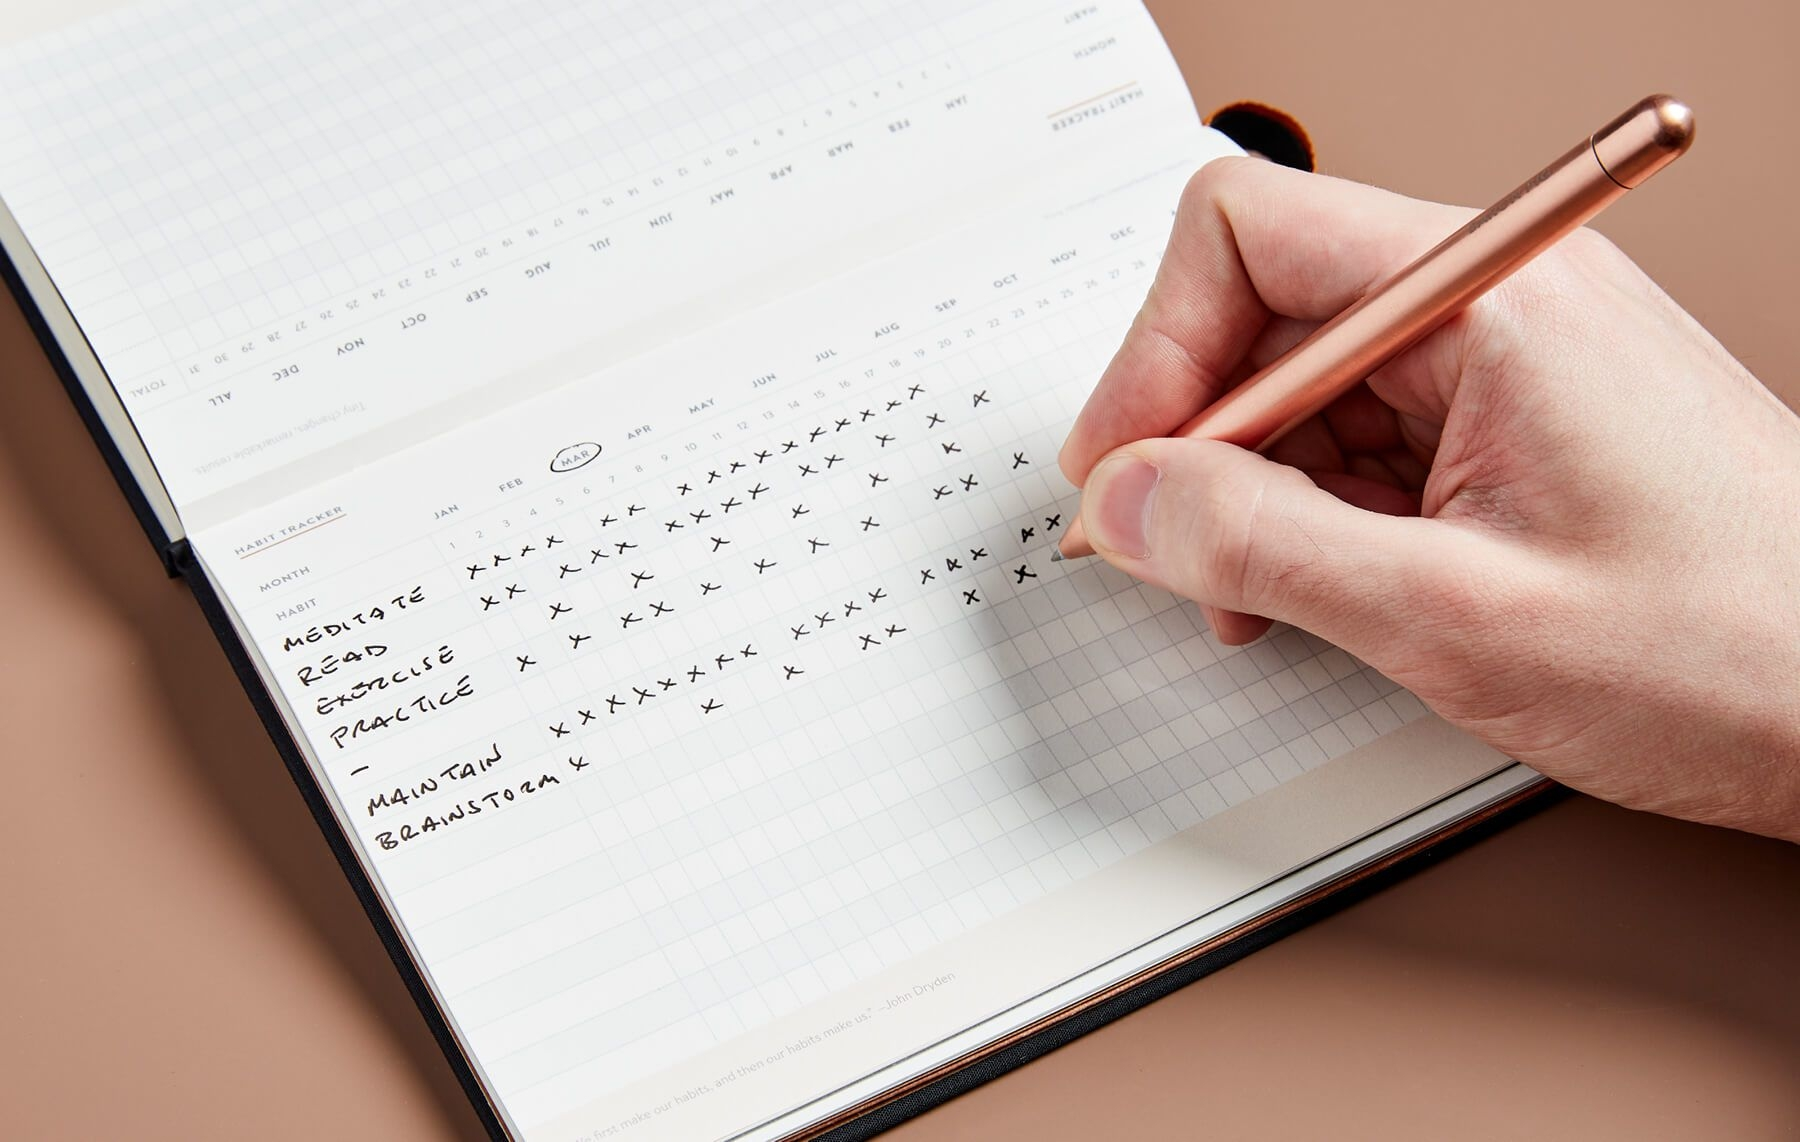 The Ultimate Habit Tracker Guide: Why And How To Track Your